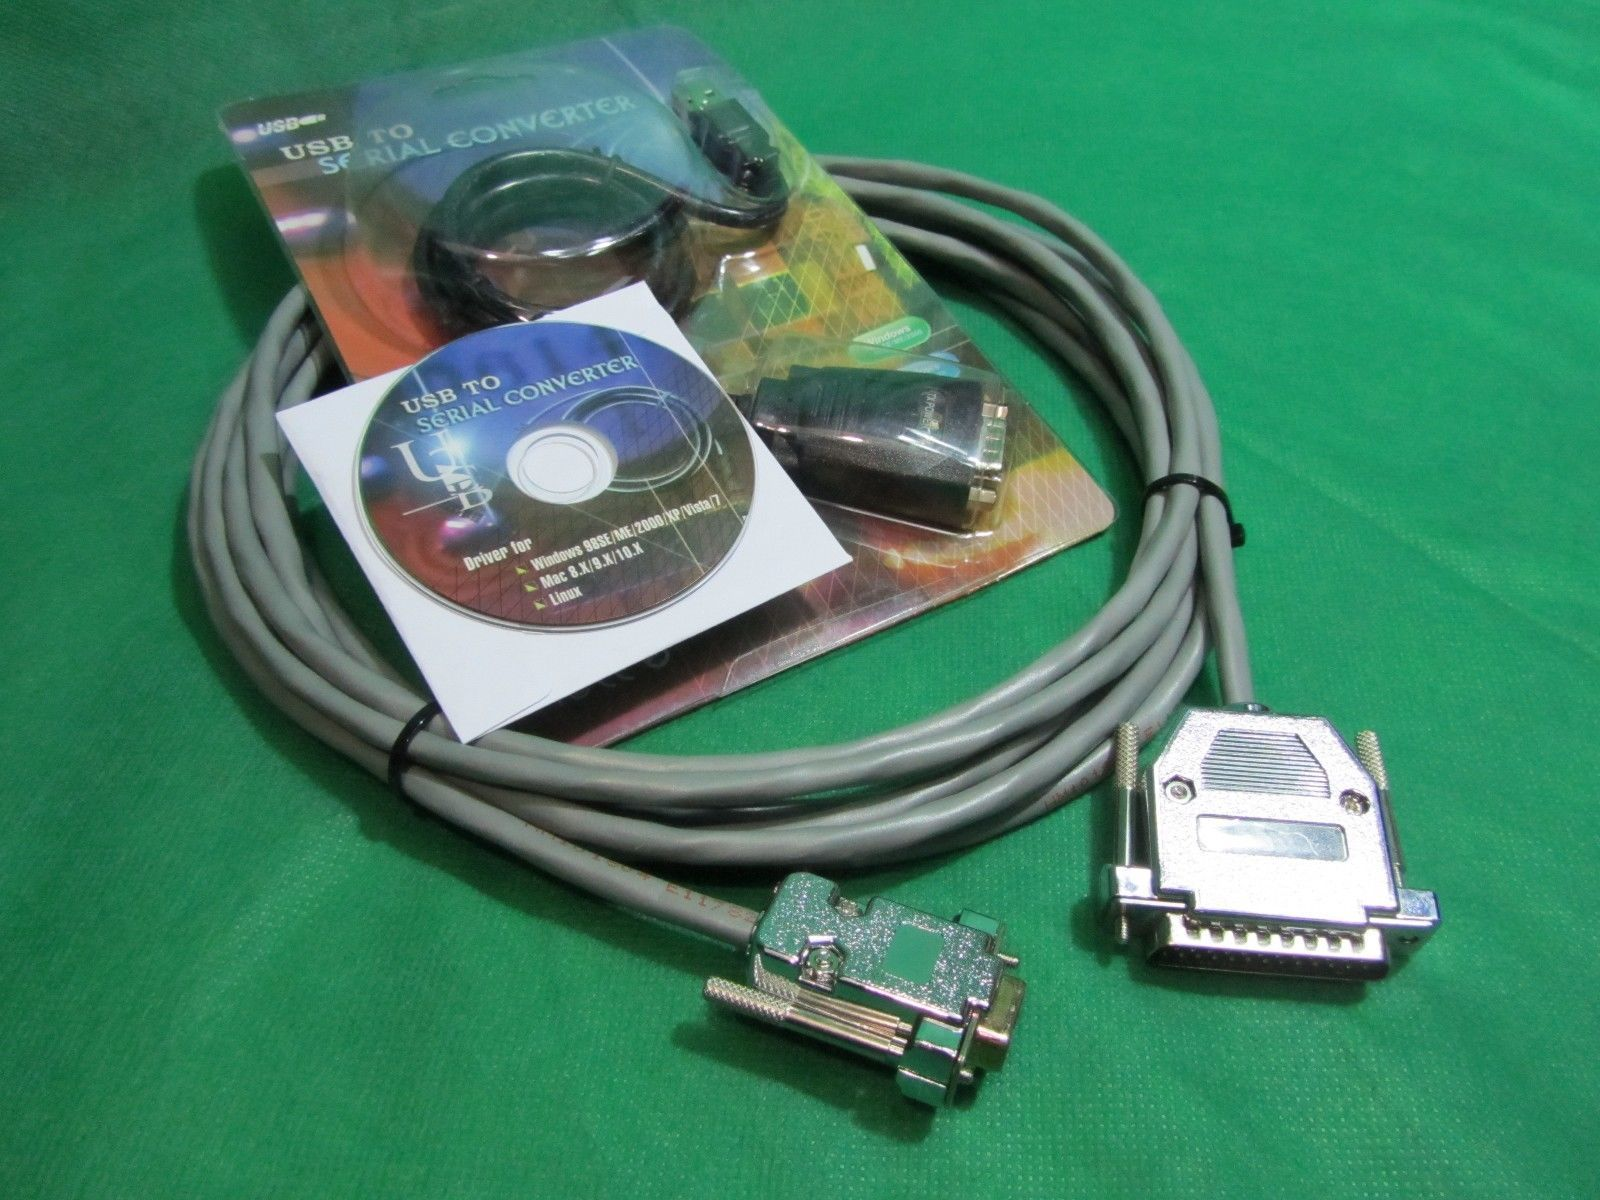 Primary image for 20 ft Quality CNC DNC RS232 Serial Cable DB9F to DB25M for PC and Laptop Kit.